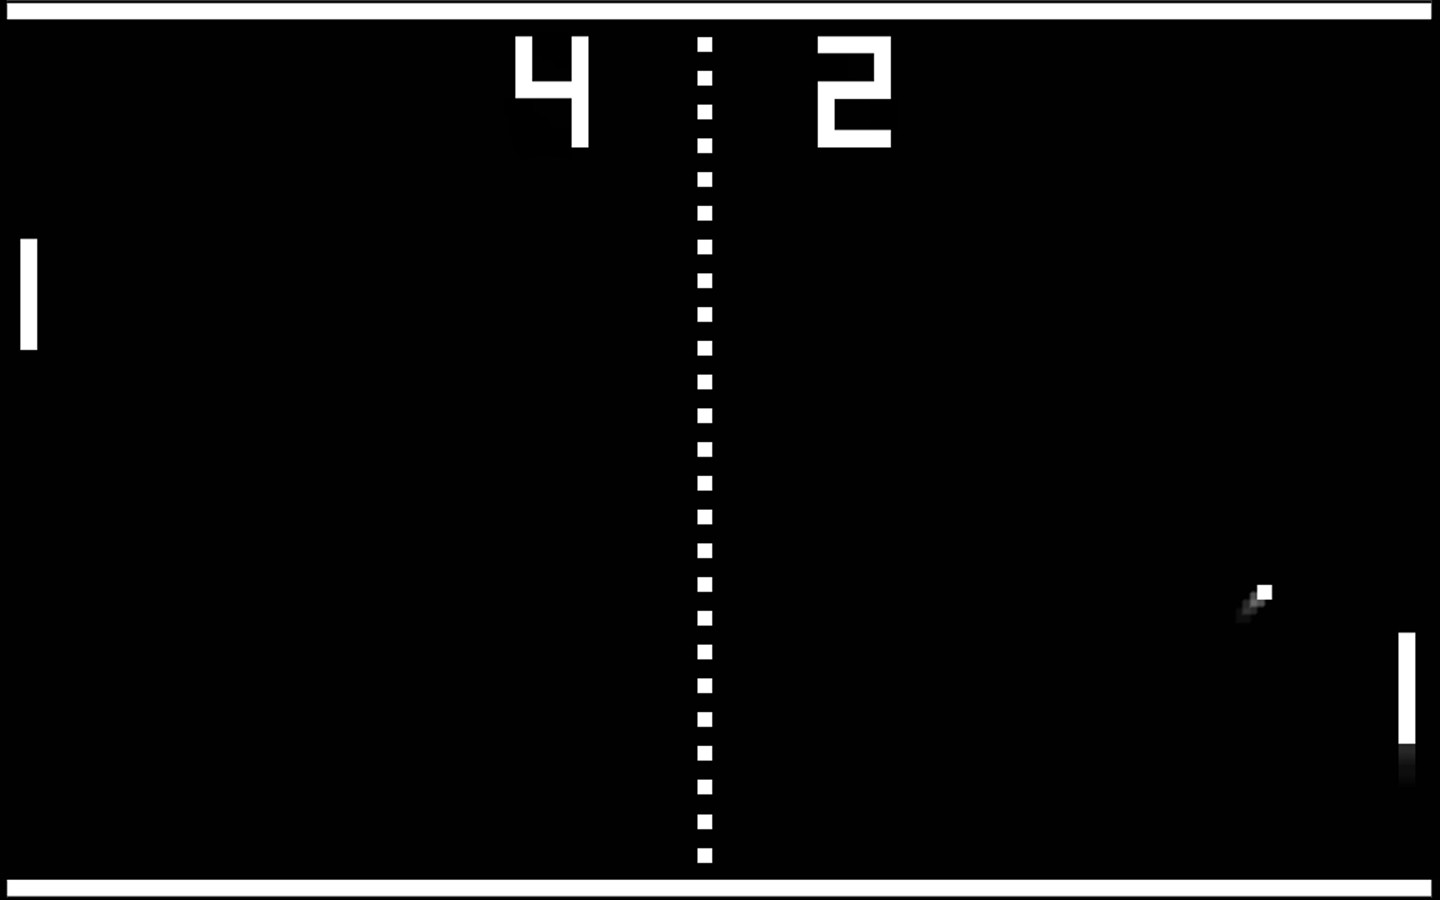 If you played the original then you are old as I am :-)